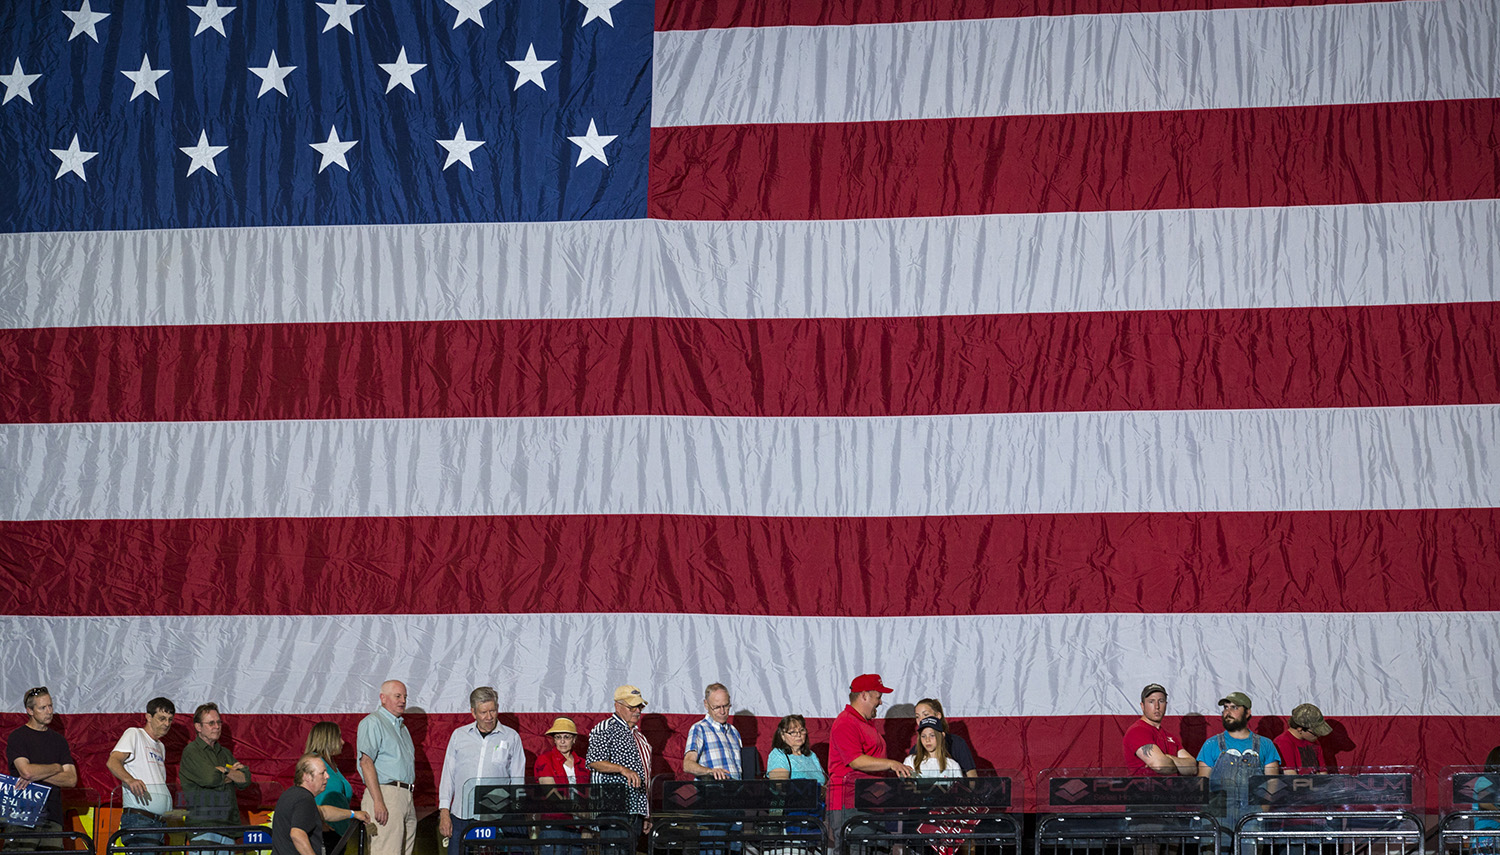 Supporters file in to hear President Donald Trump speak at the U.S. Cellular Center in Cedar Rapids, Iowa, Wednesday, June 21, 2017.